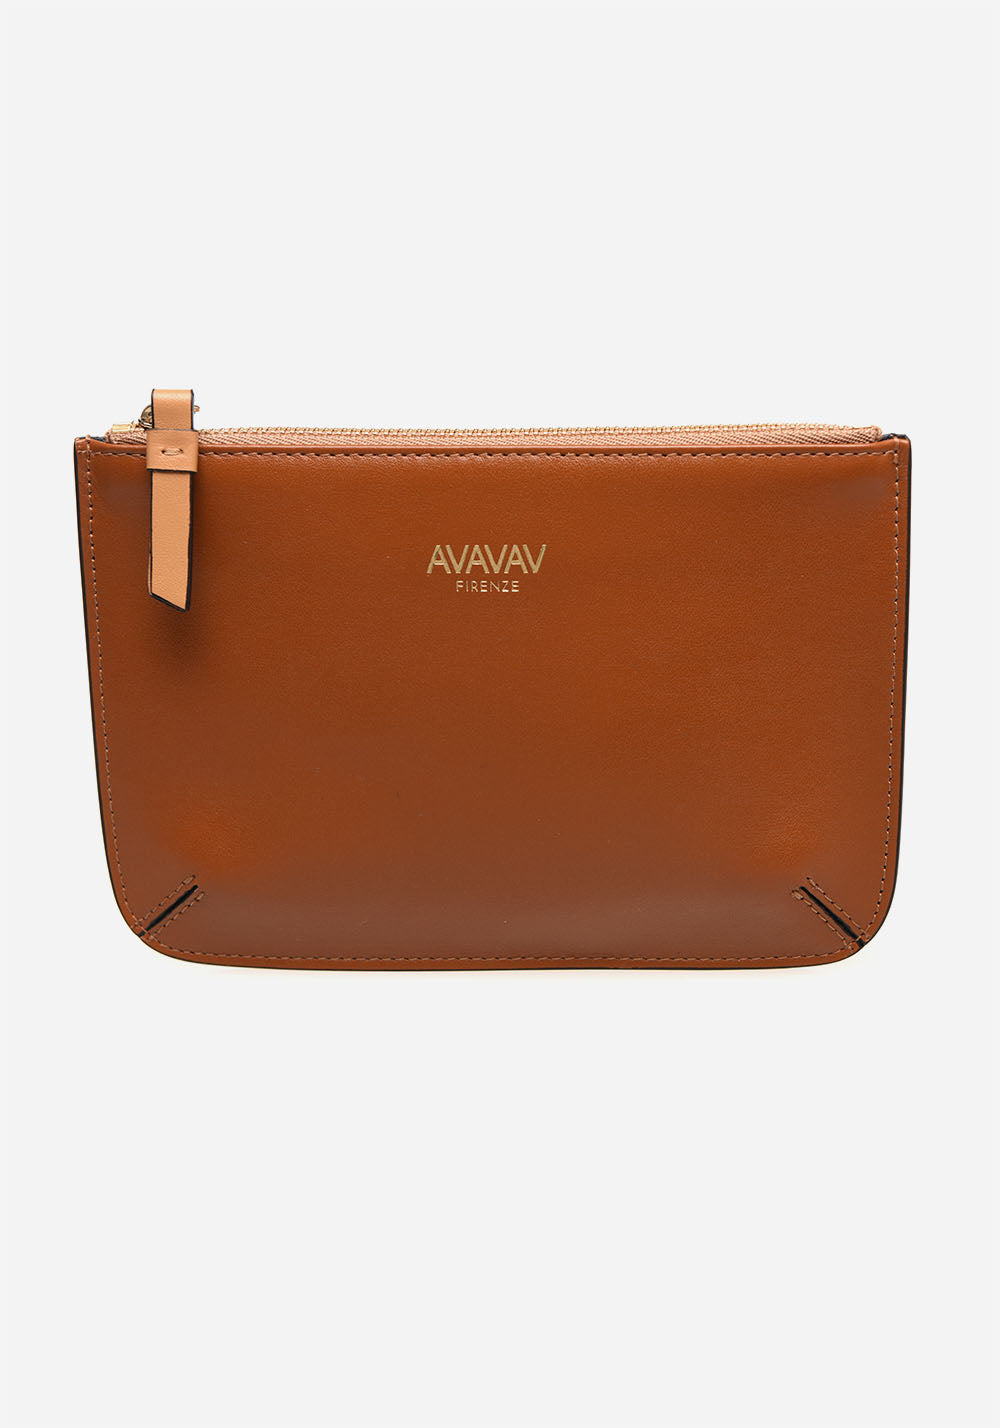 Small Pouch in Cognac - AVAVAV-Small Pouch in Cognac